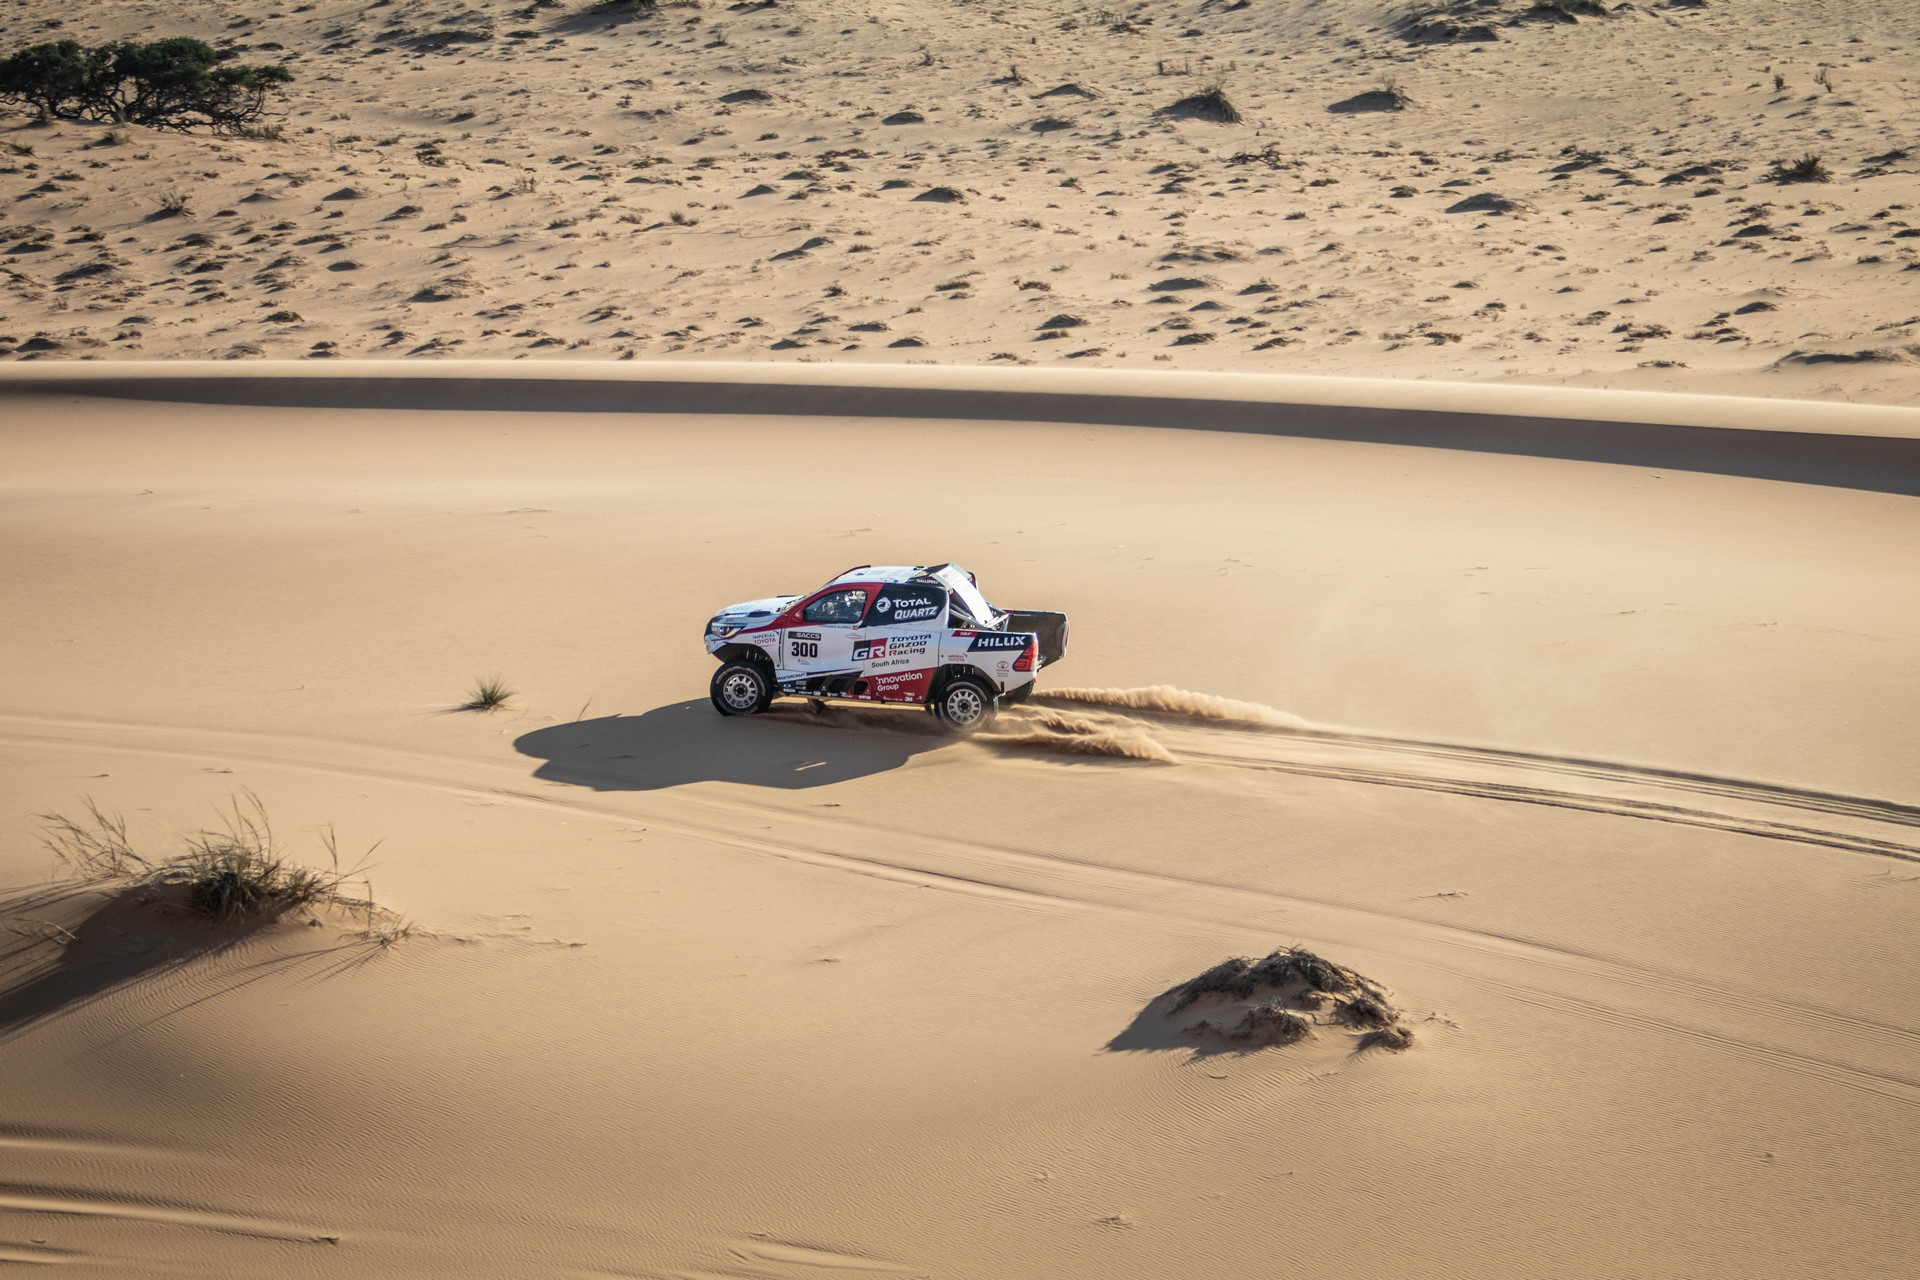 Fernando-Alonso-Training-Namibian-desert-9